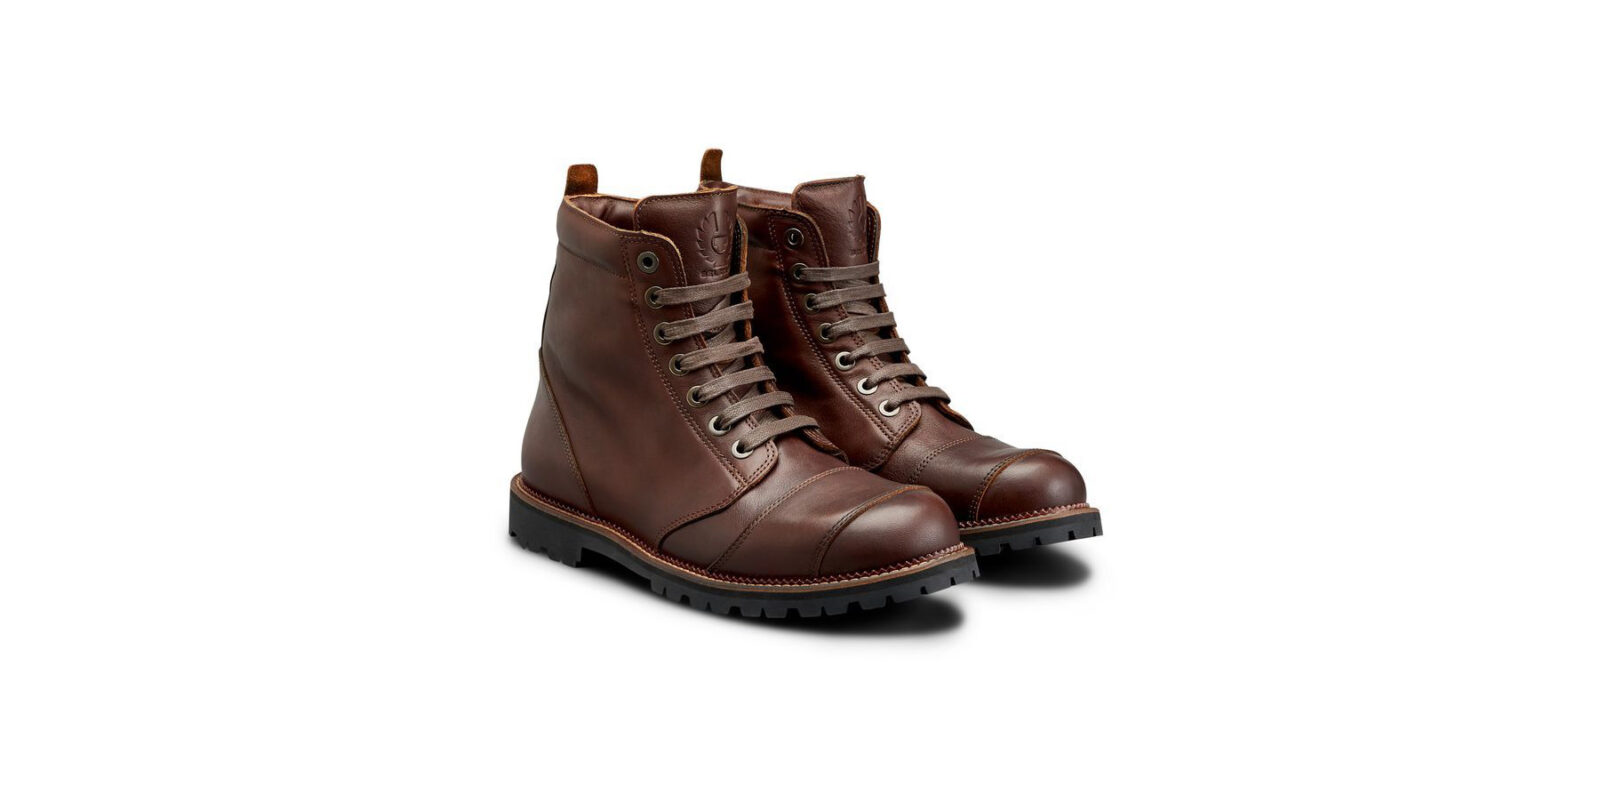 Belstaff Resolve Boots - Comfortable Reinforced Motorcycle Boots